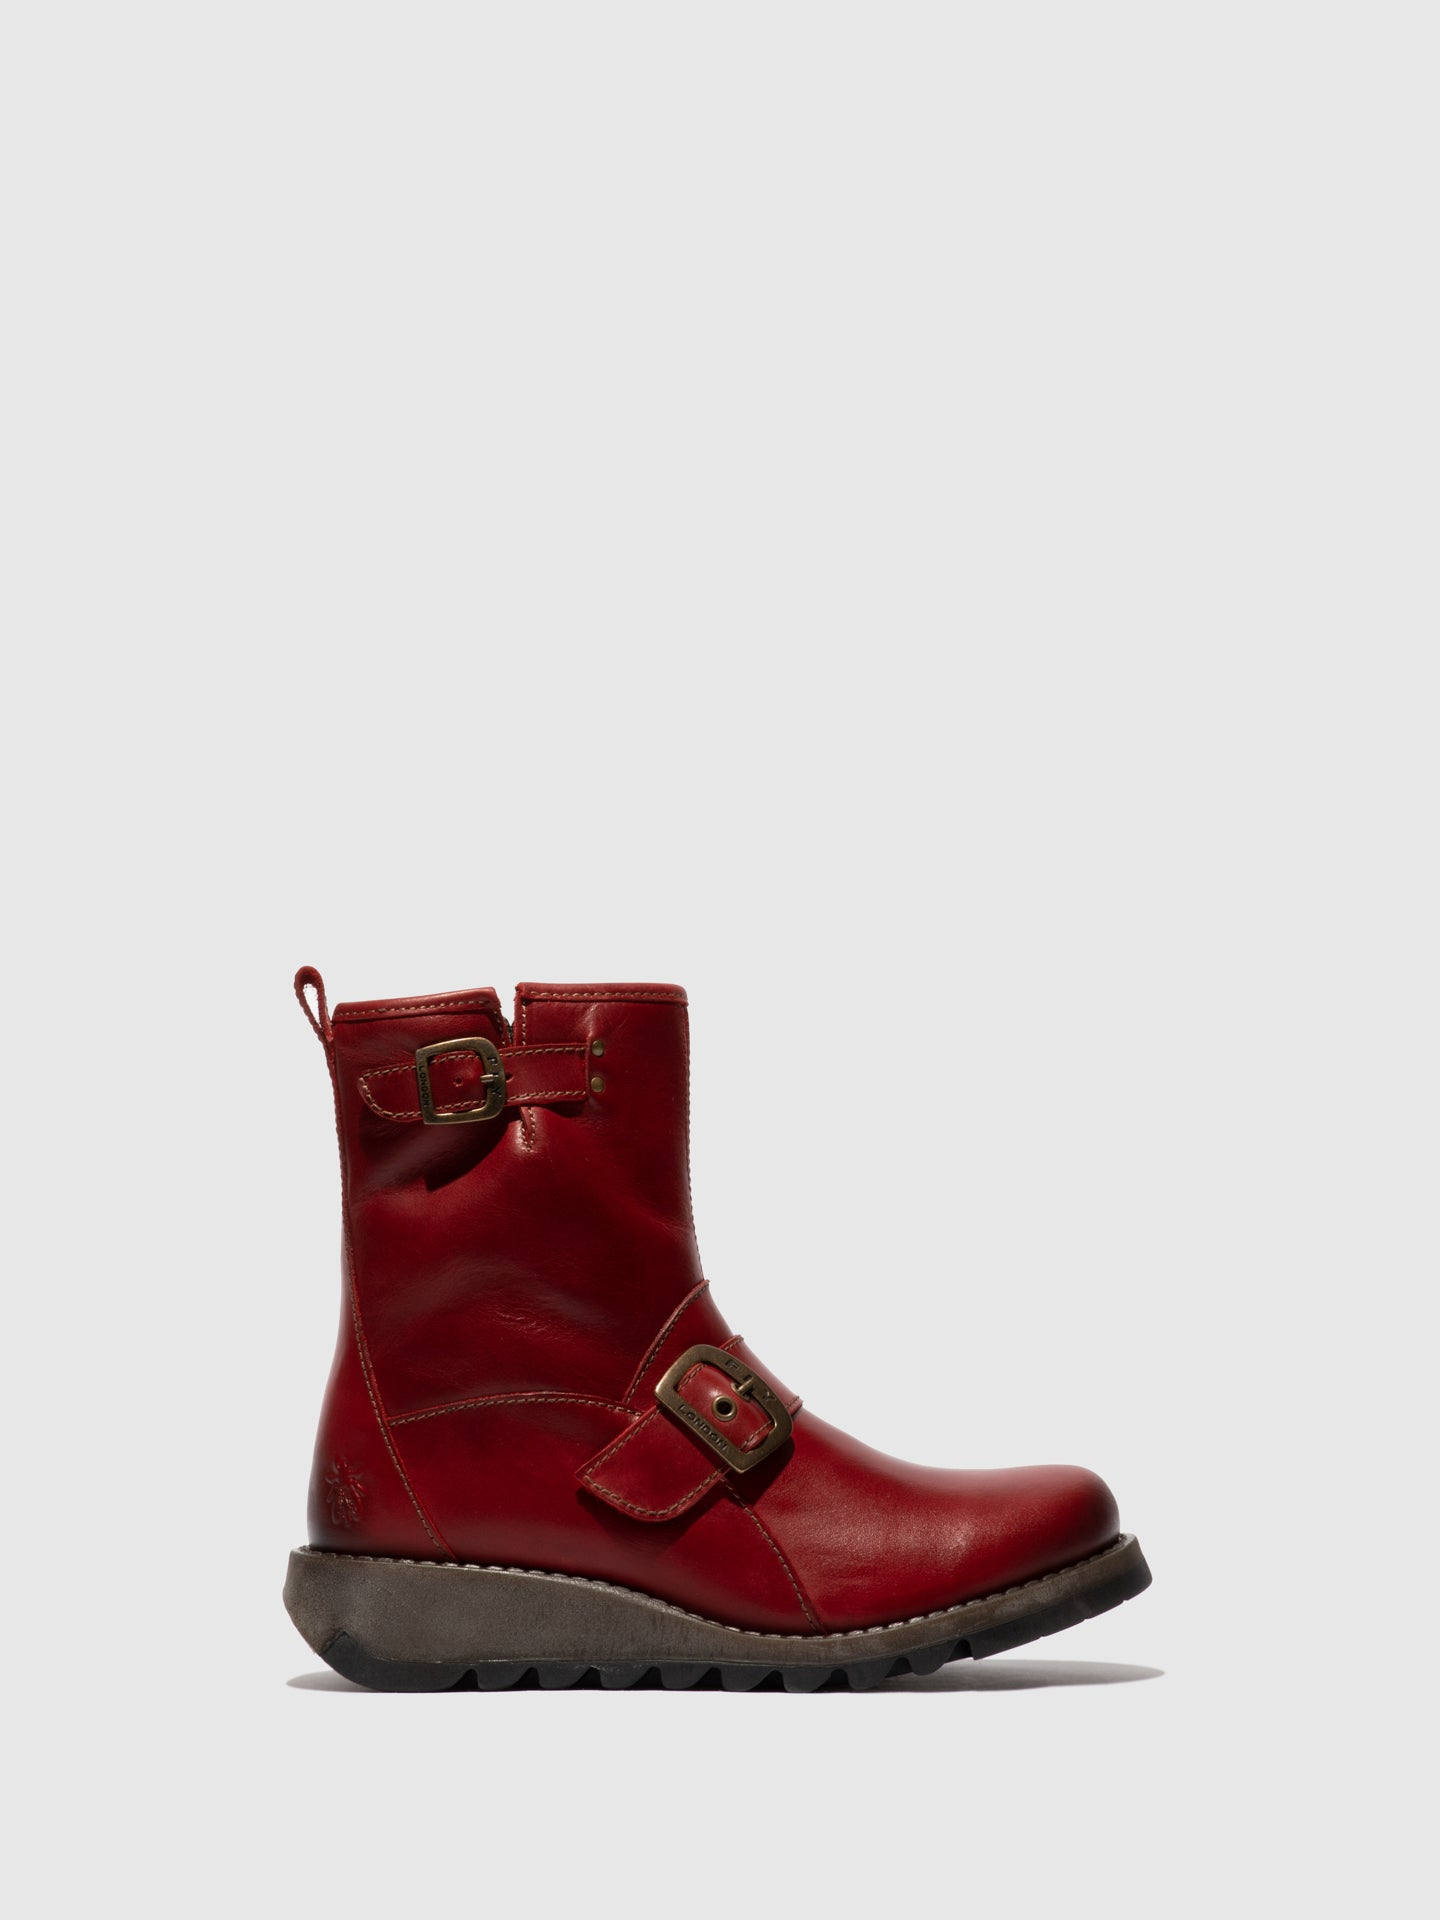 Fly London Buckle Ankle Boots SINO525FLY RED